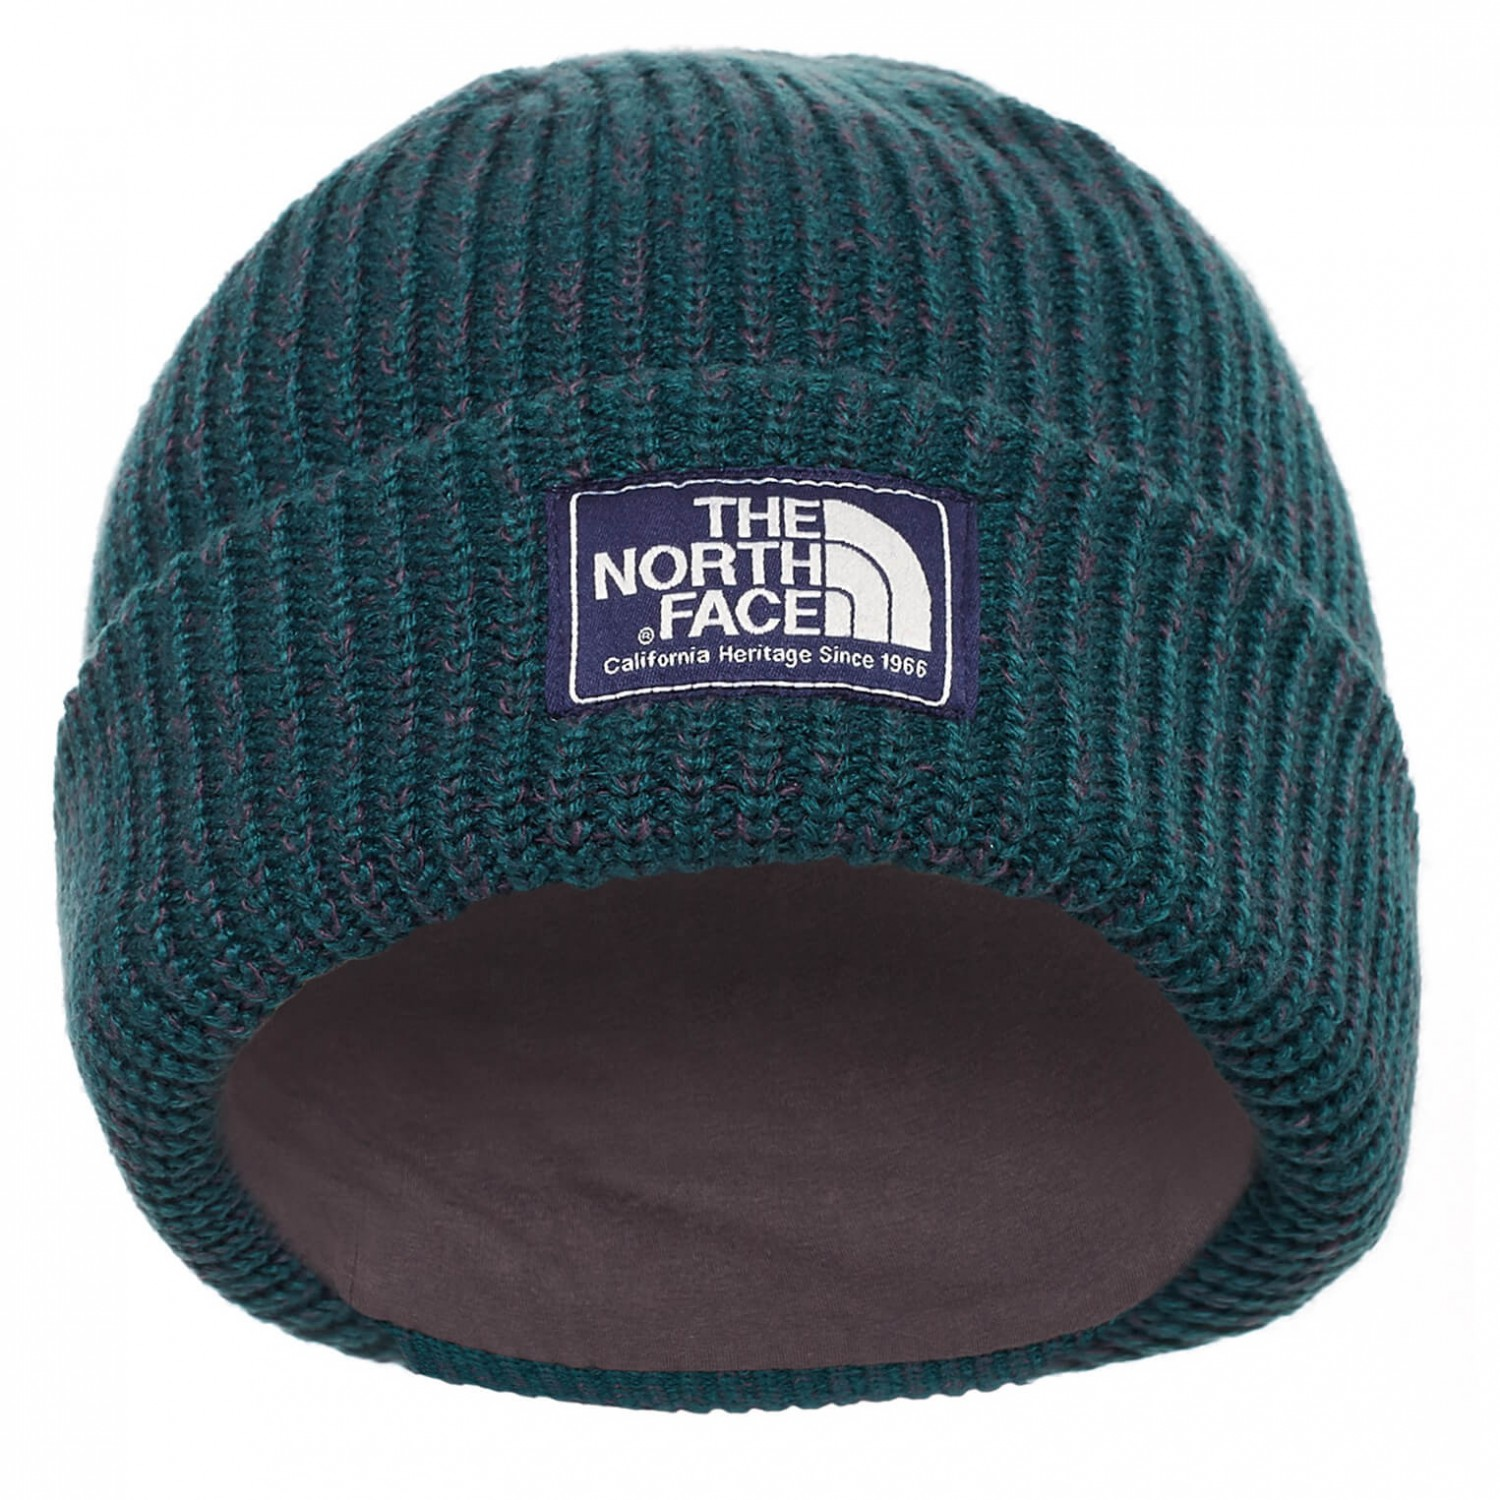 29264a89bb4 The North Face Salty Dog Beanie - Mütze online kaufen